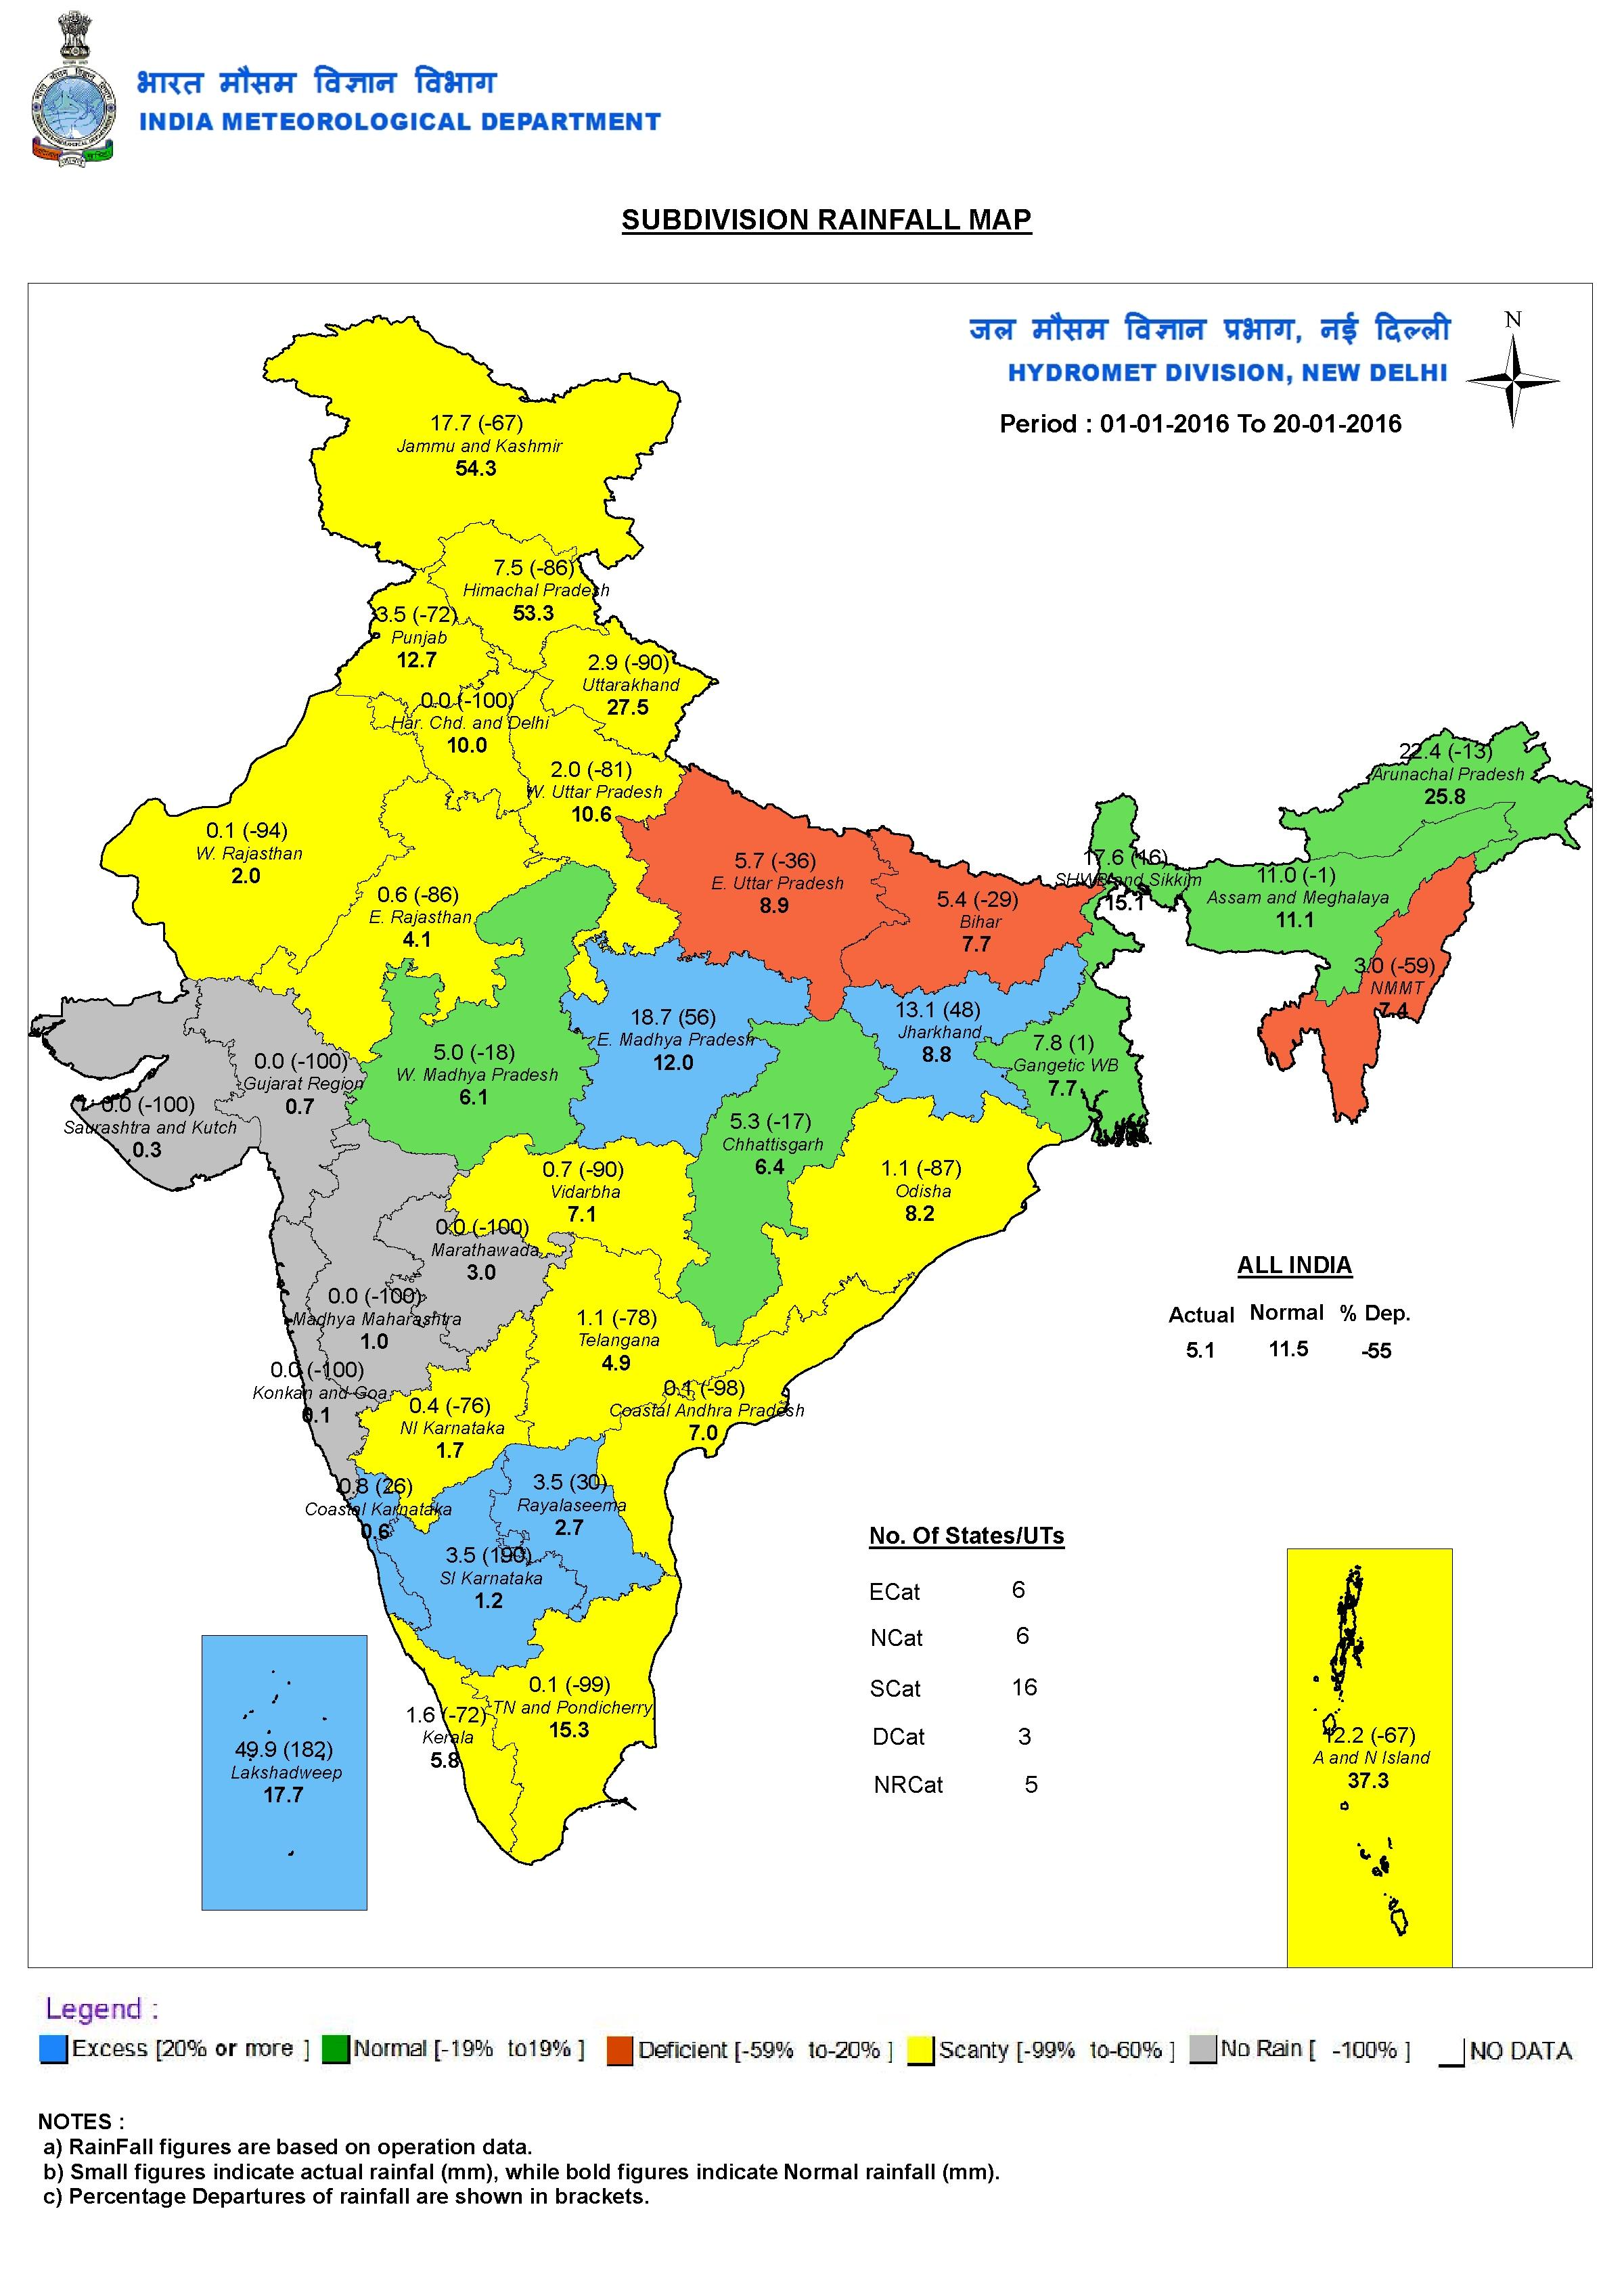 The map shows scanty rainfall in areas (marked in yellow ) in north India between January 1 and January 20, 2016 